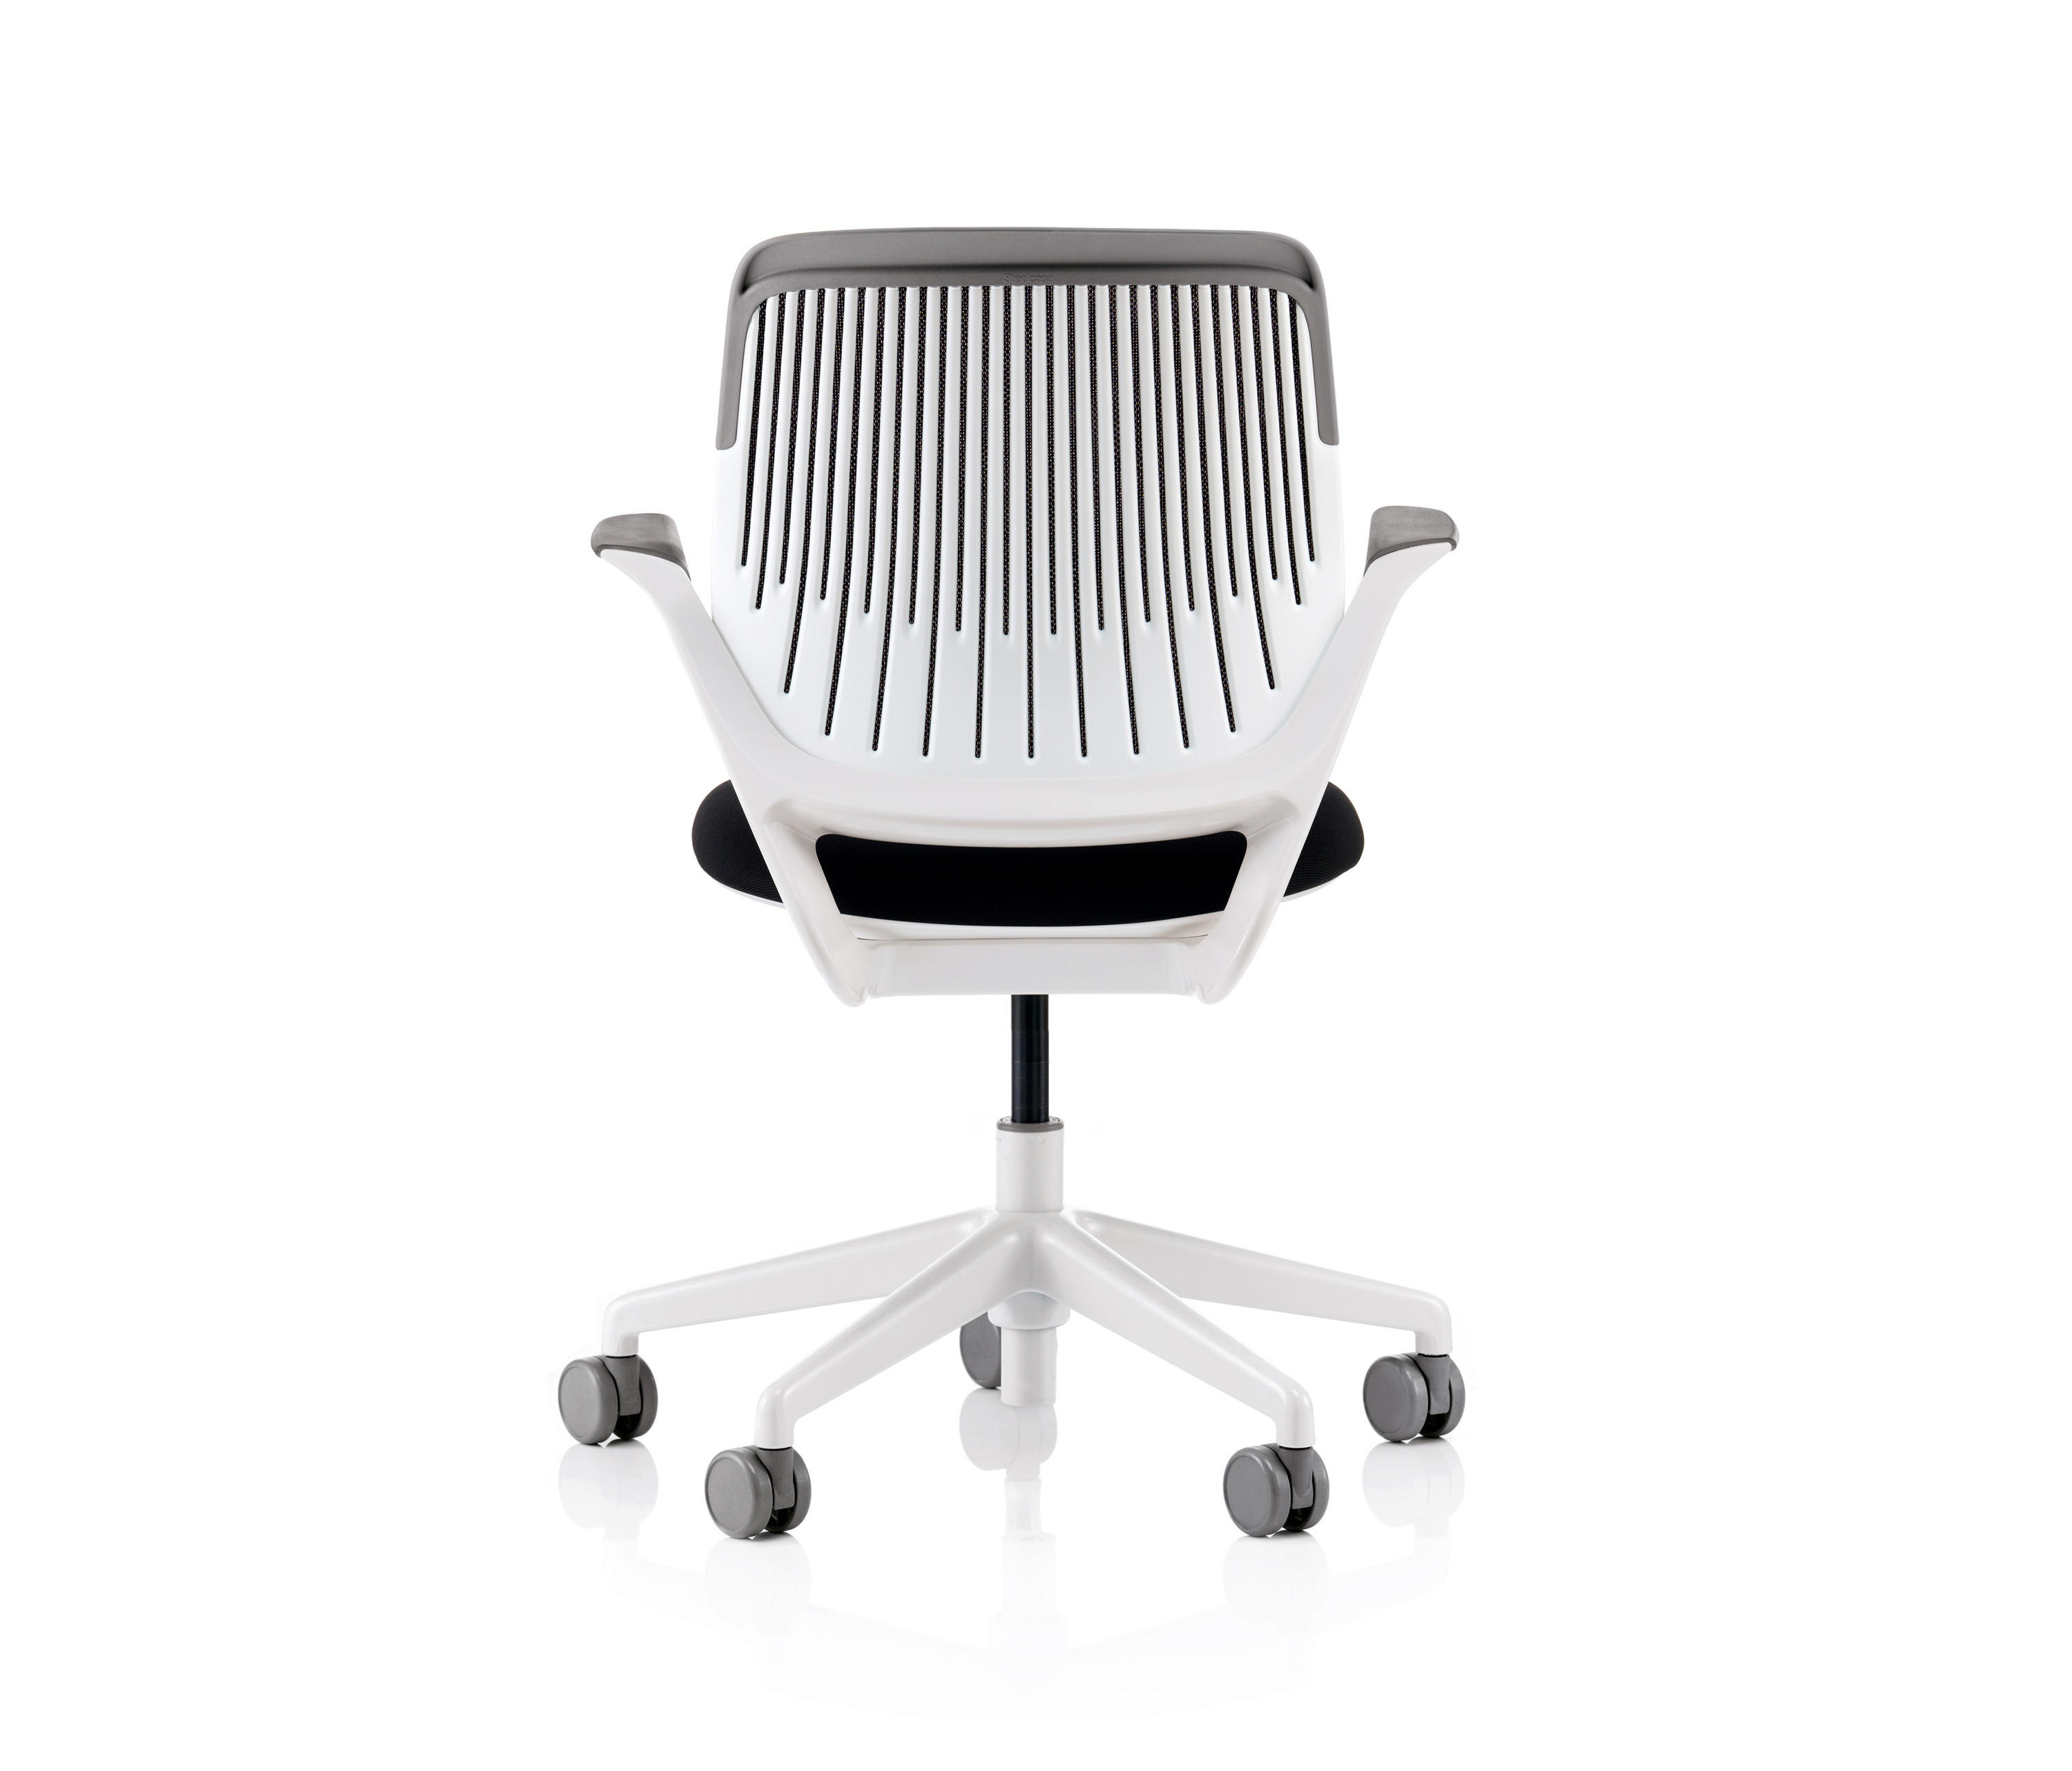 COBI Task chairs from Steelcase